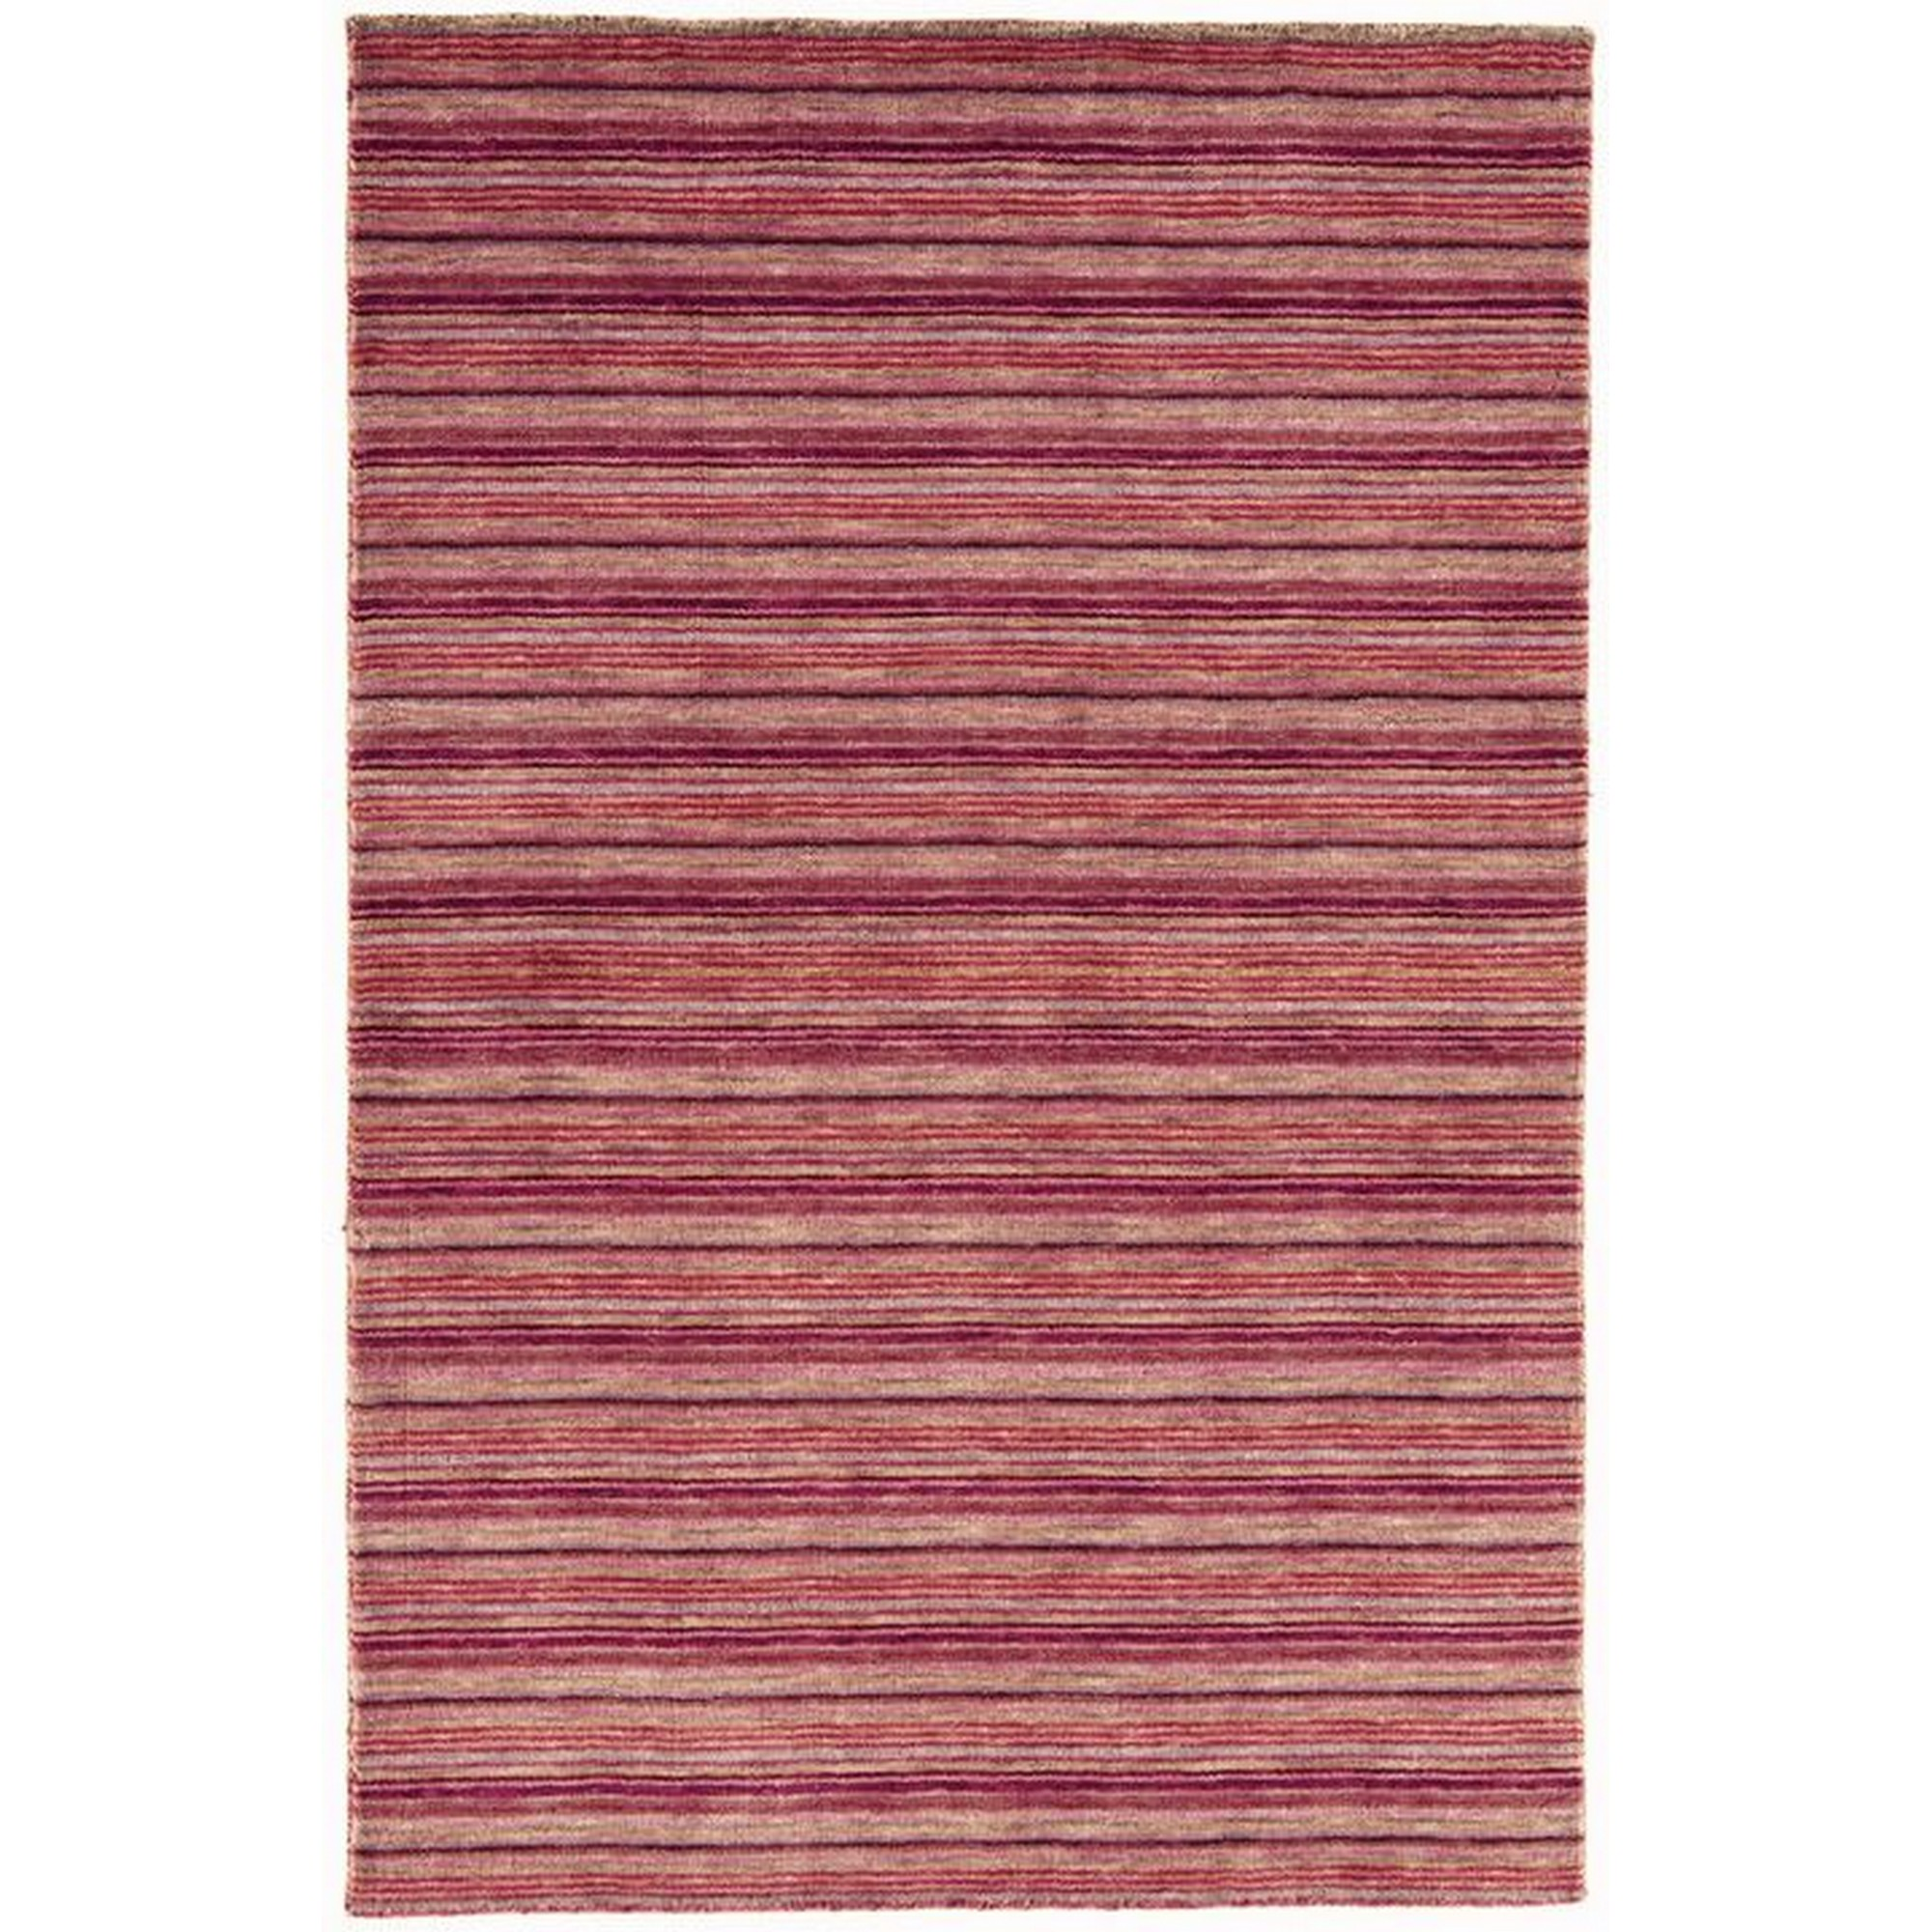 joseph rugs  striped rugs  wool rugs  the rug seller - joseph  sienna